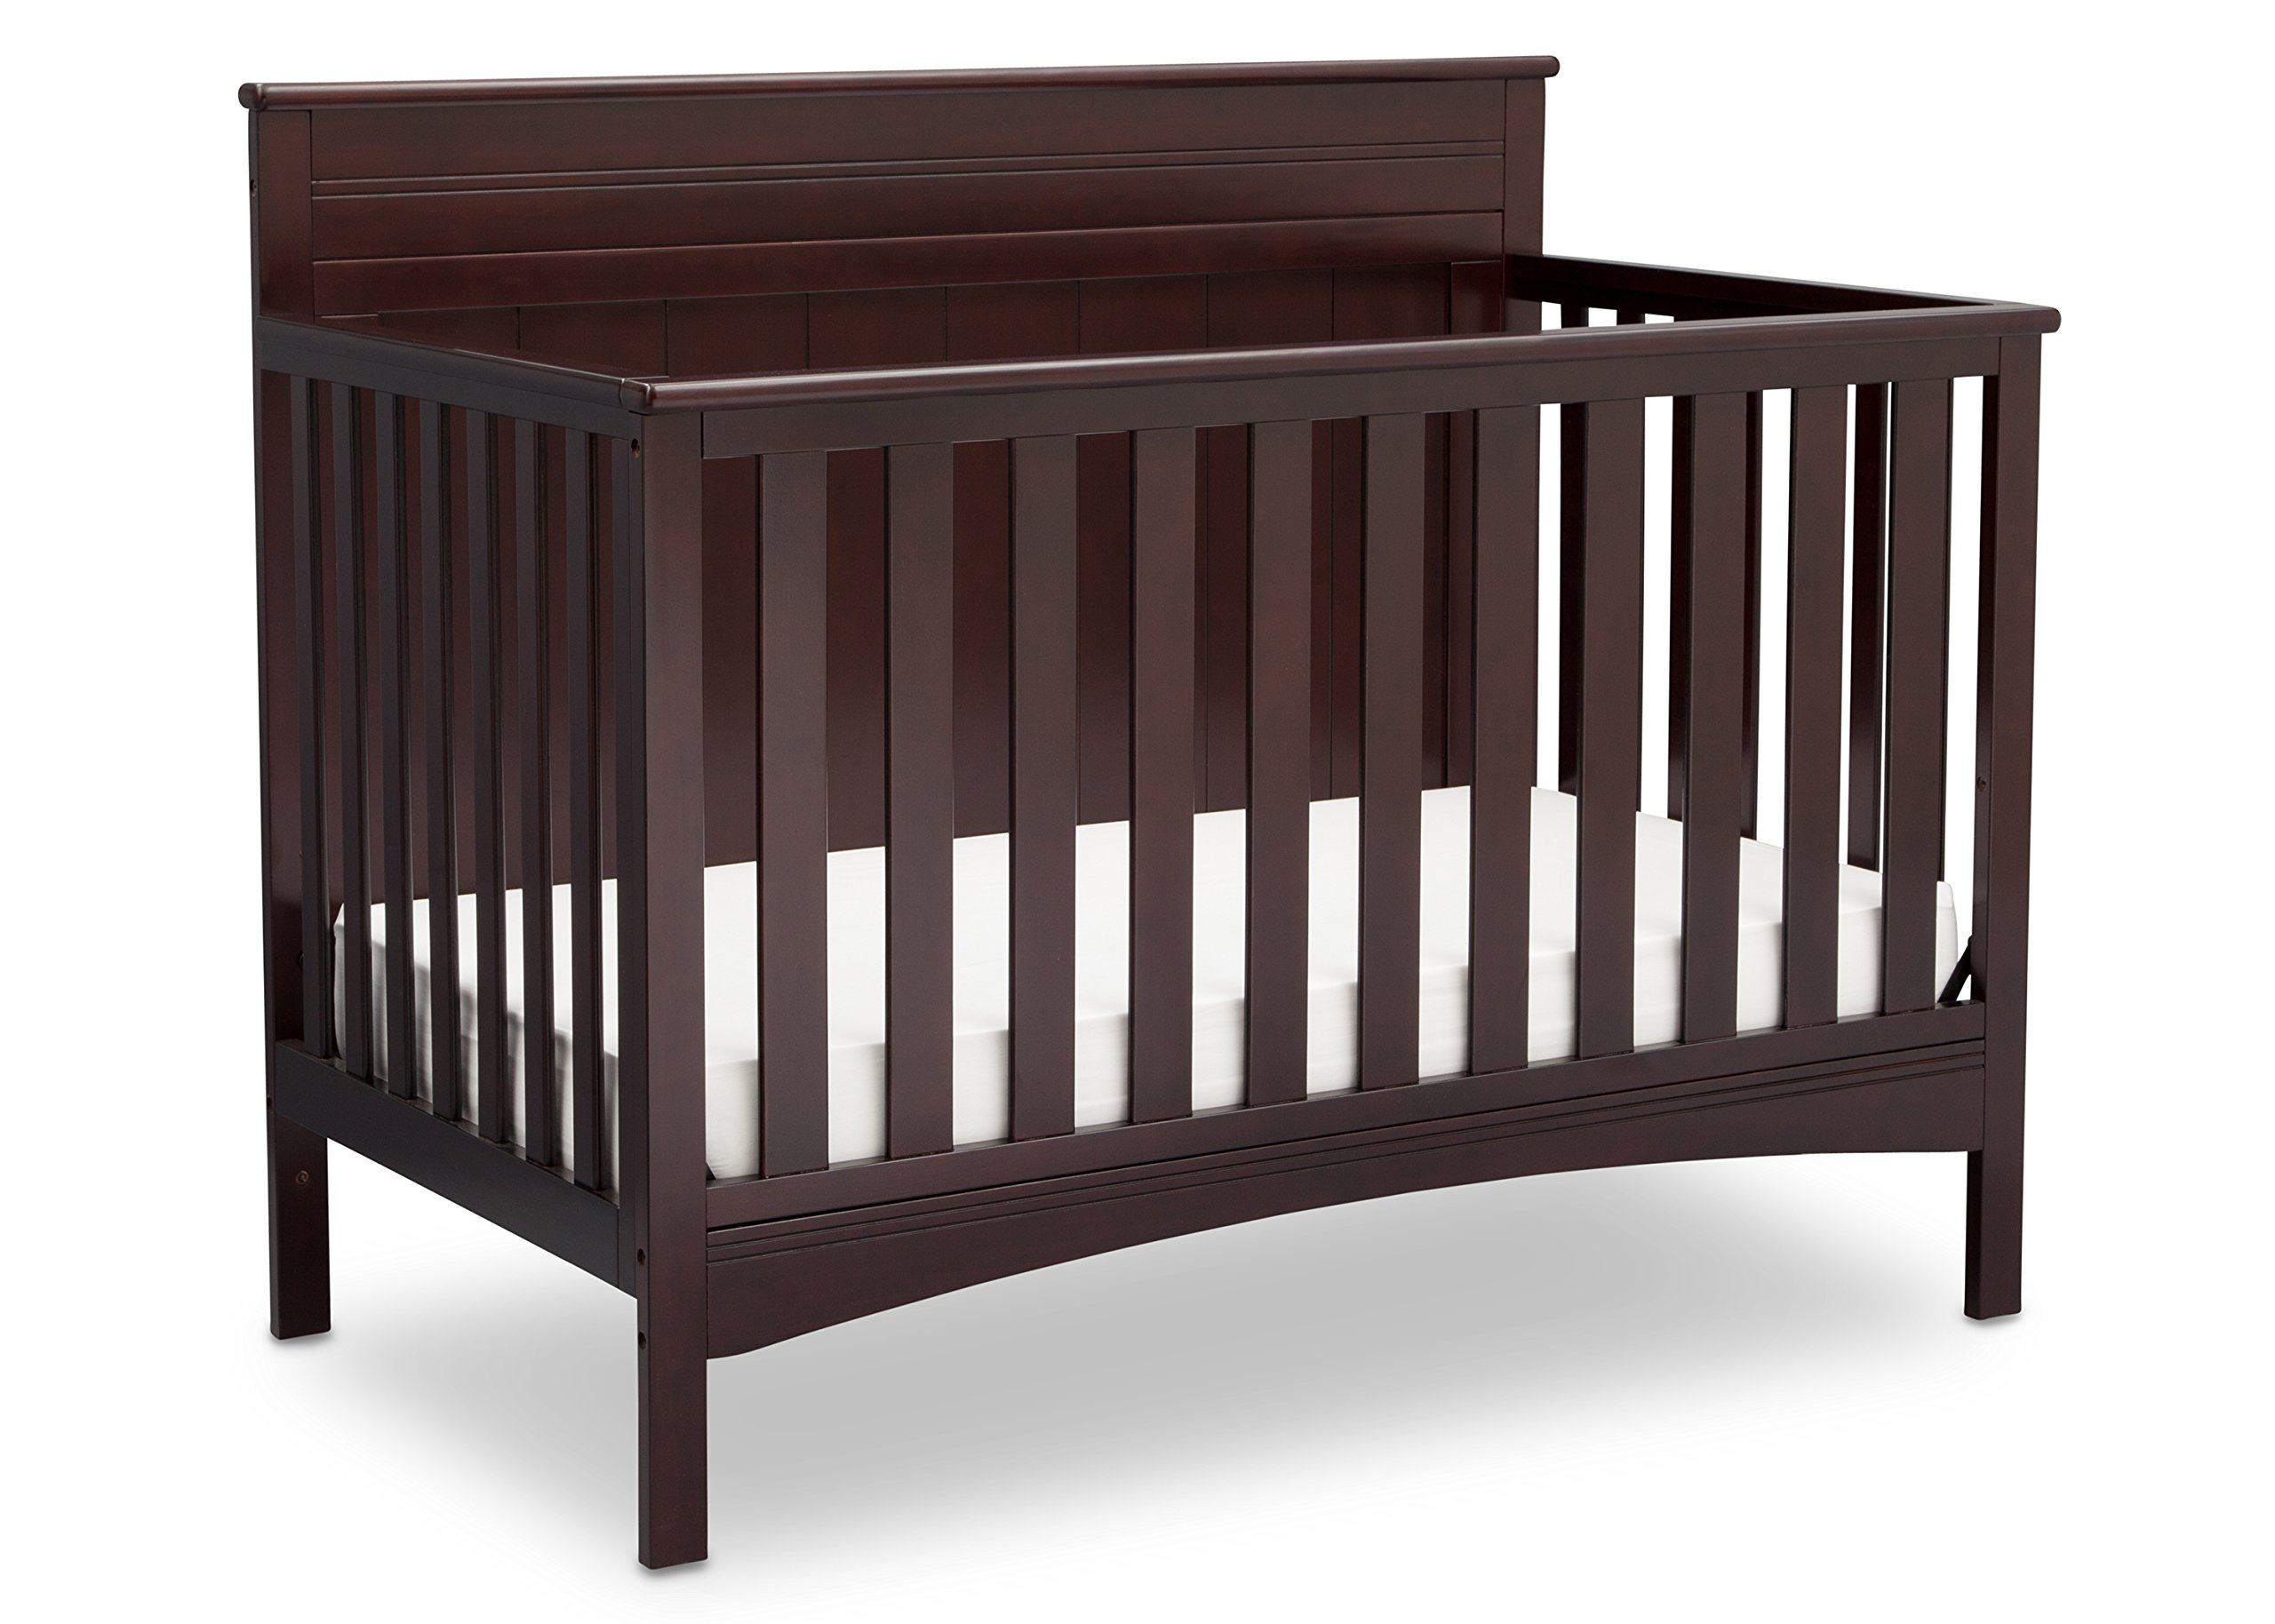 Baby Crib Mattress Critiques Amazon.com : Delta Children Fancy 4-in-1 Convertible Baby Crib, Dark  Chocolate : Baby